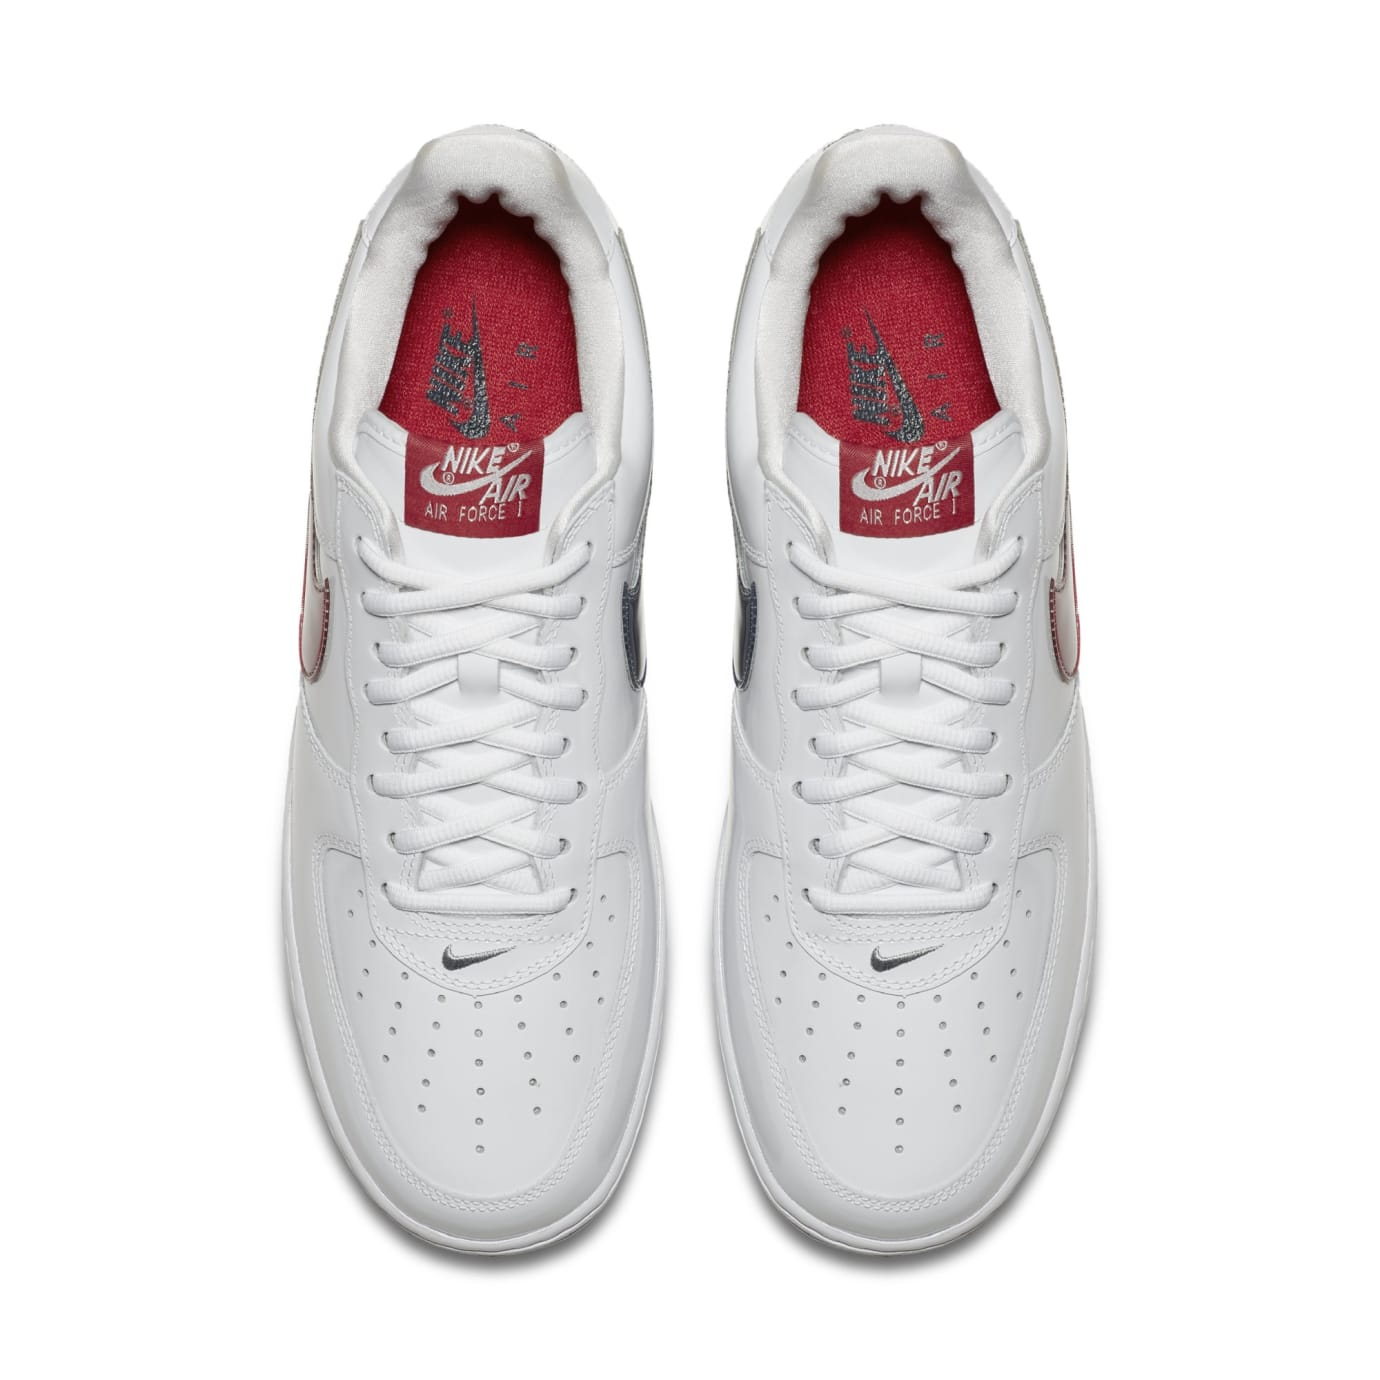 Nike Air Force 1 'Taiwan' 845053-105 (Top)